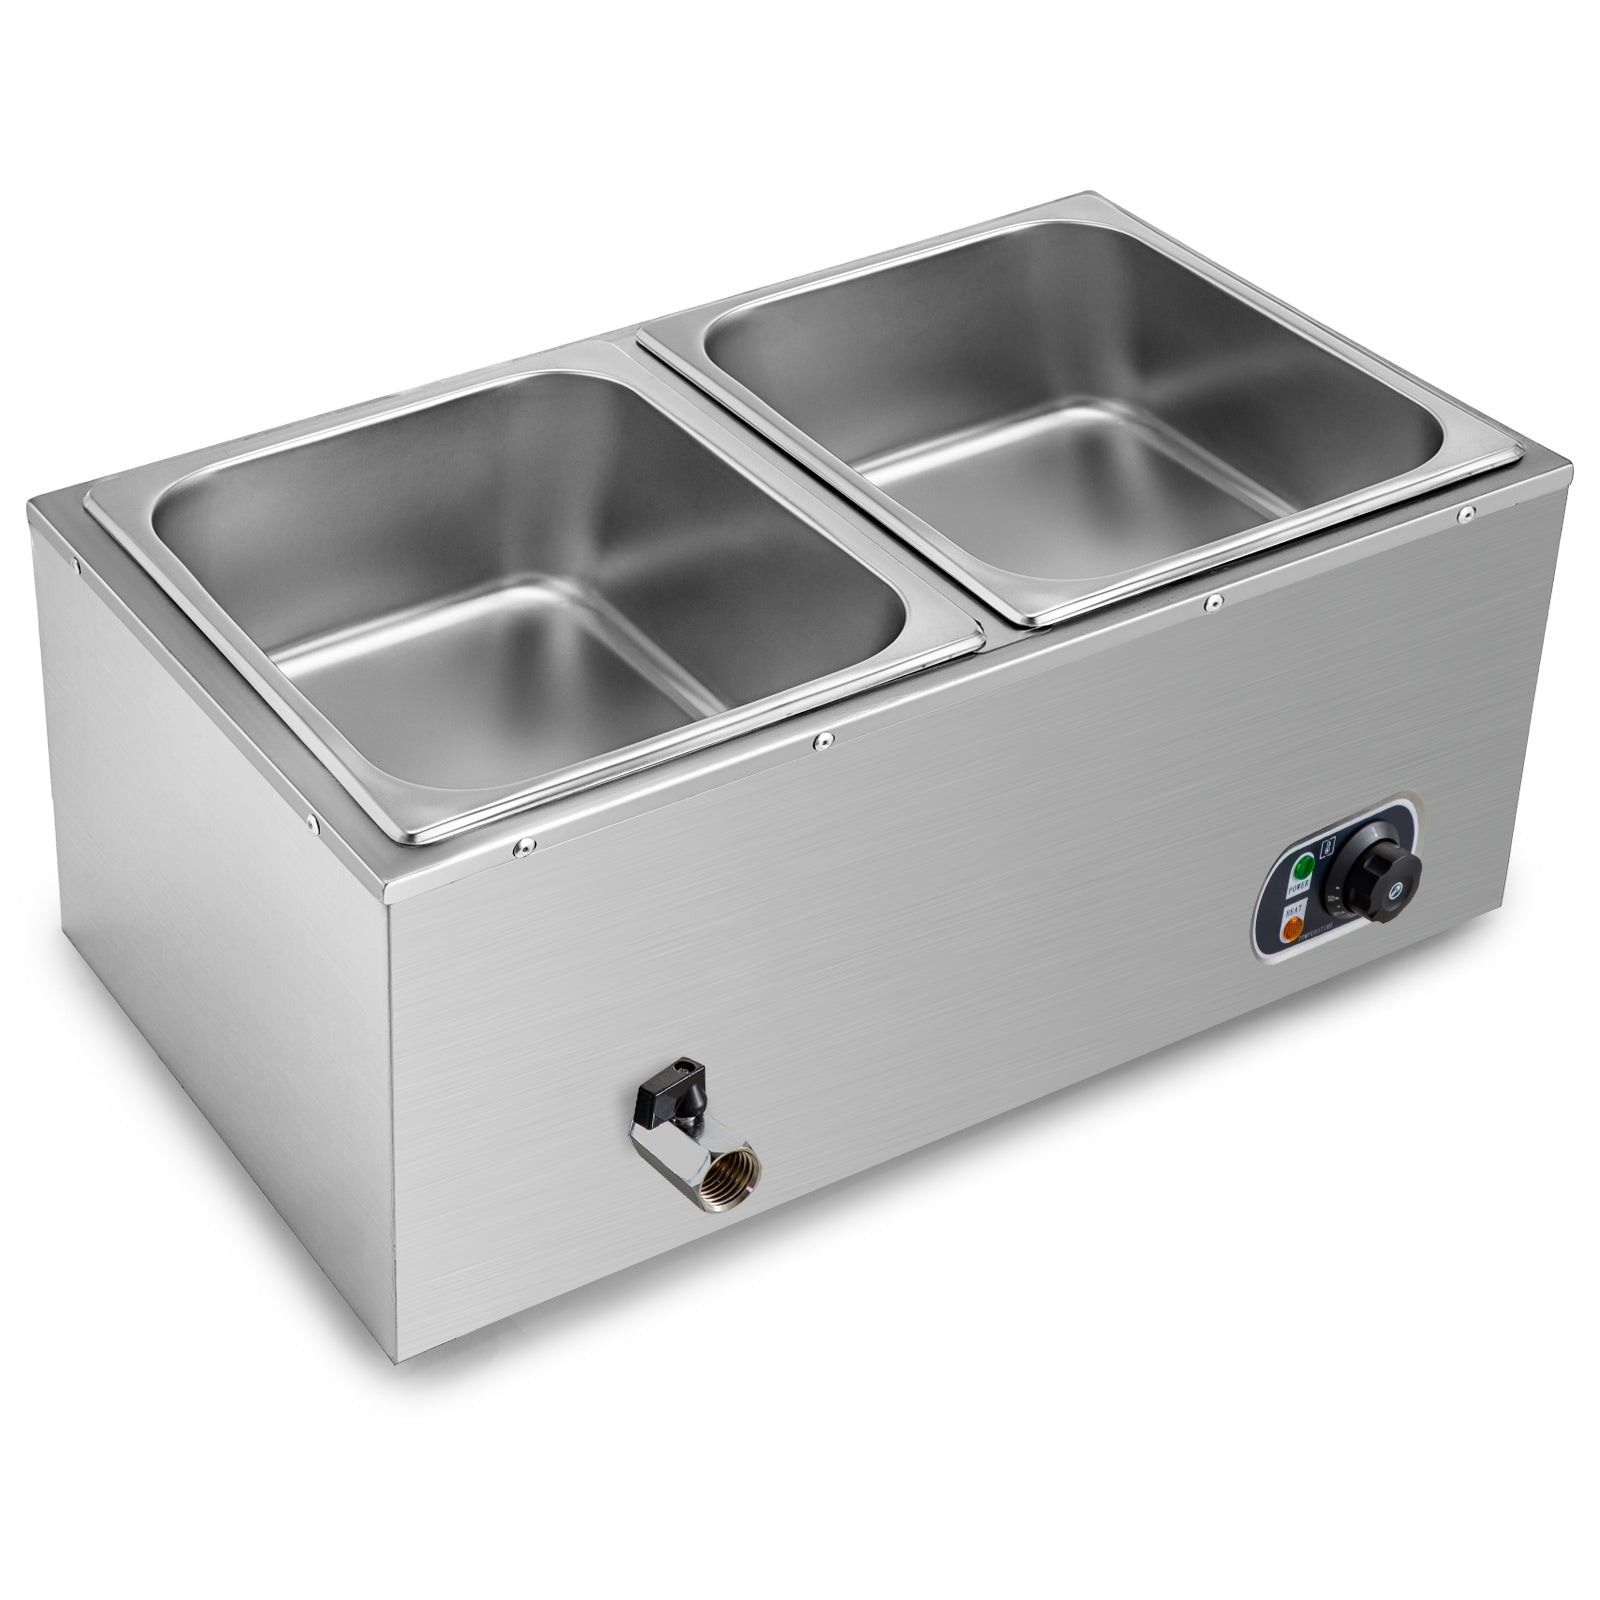 Bain Marie Food Warmer 2pans 850w Buffet Steam Table Steamer Wet Heat Countertop